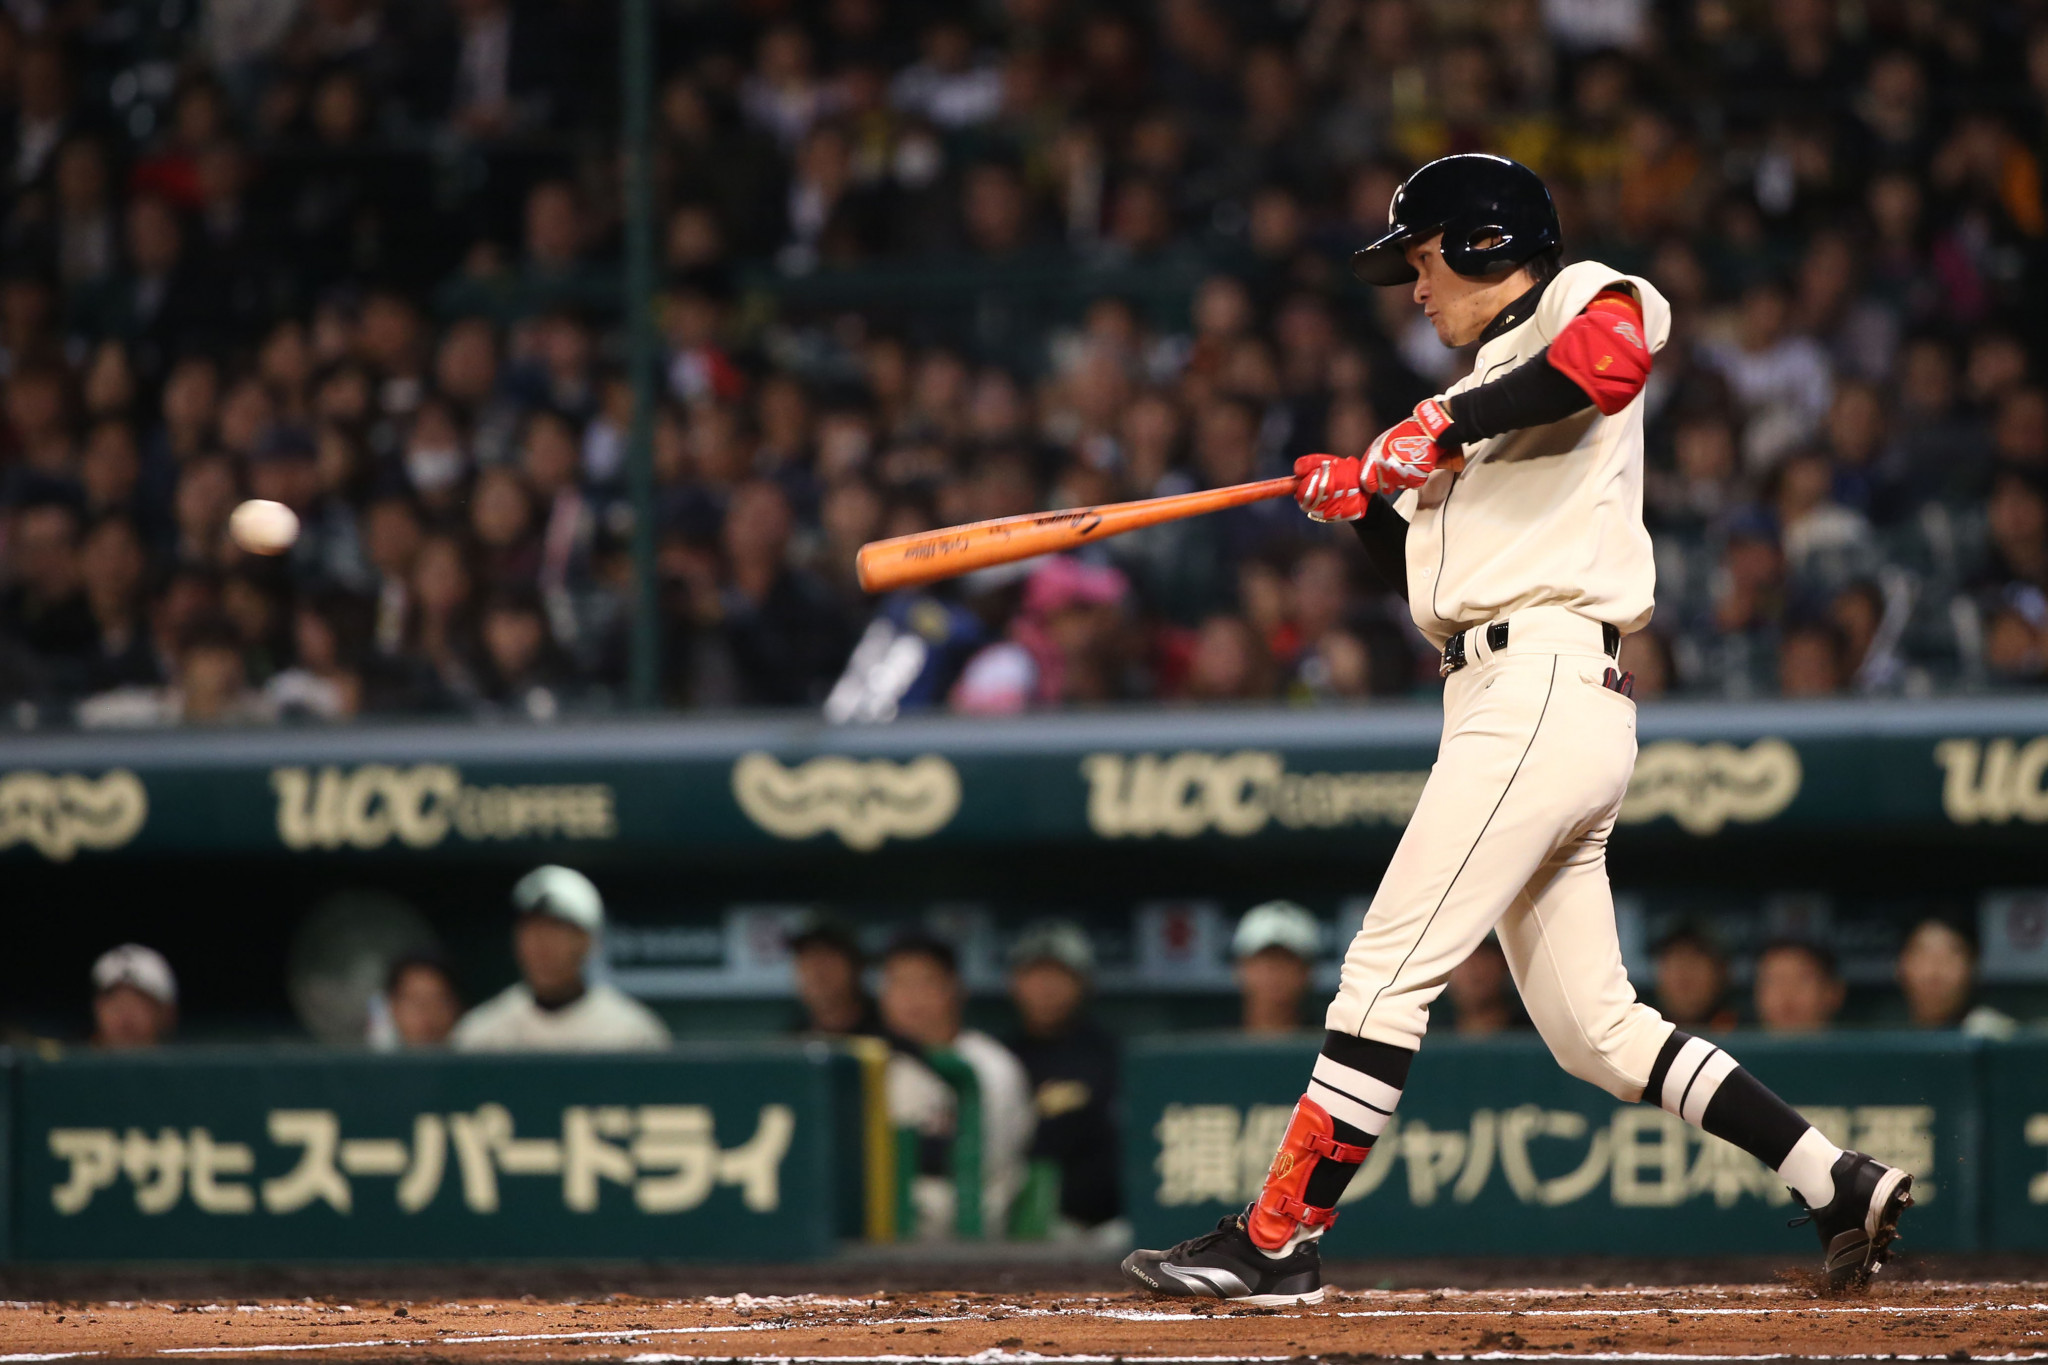 Competition would have taken place at the Koshien Stadium ©Getty Images